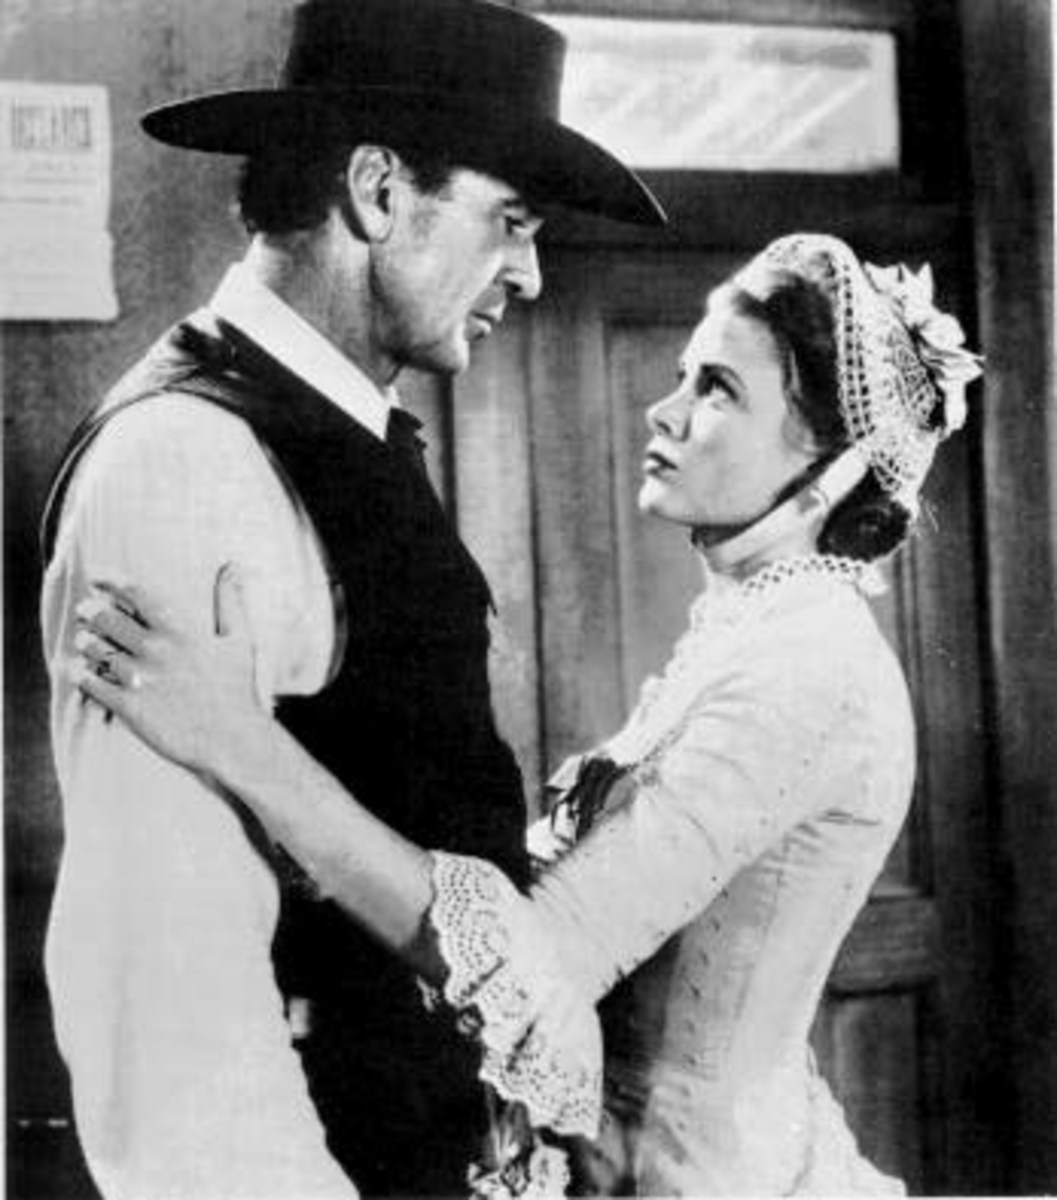 Grace with Gary Cooper in High Noon